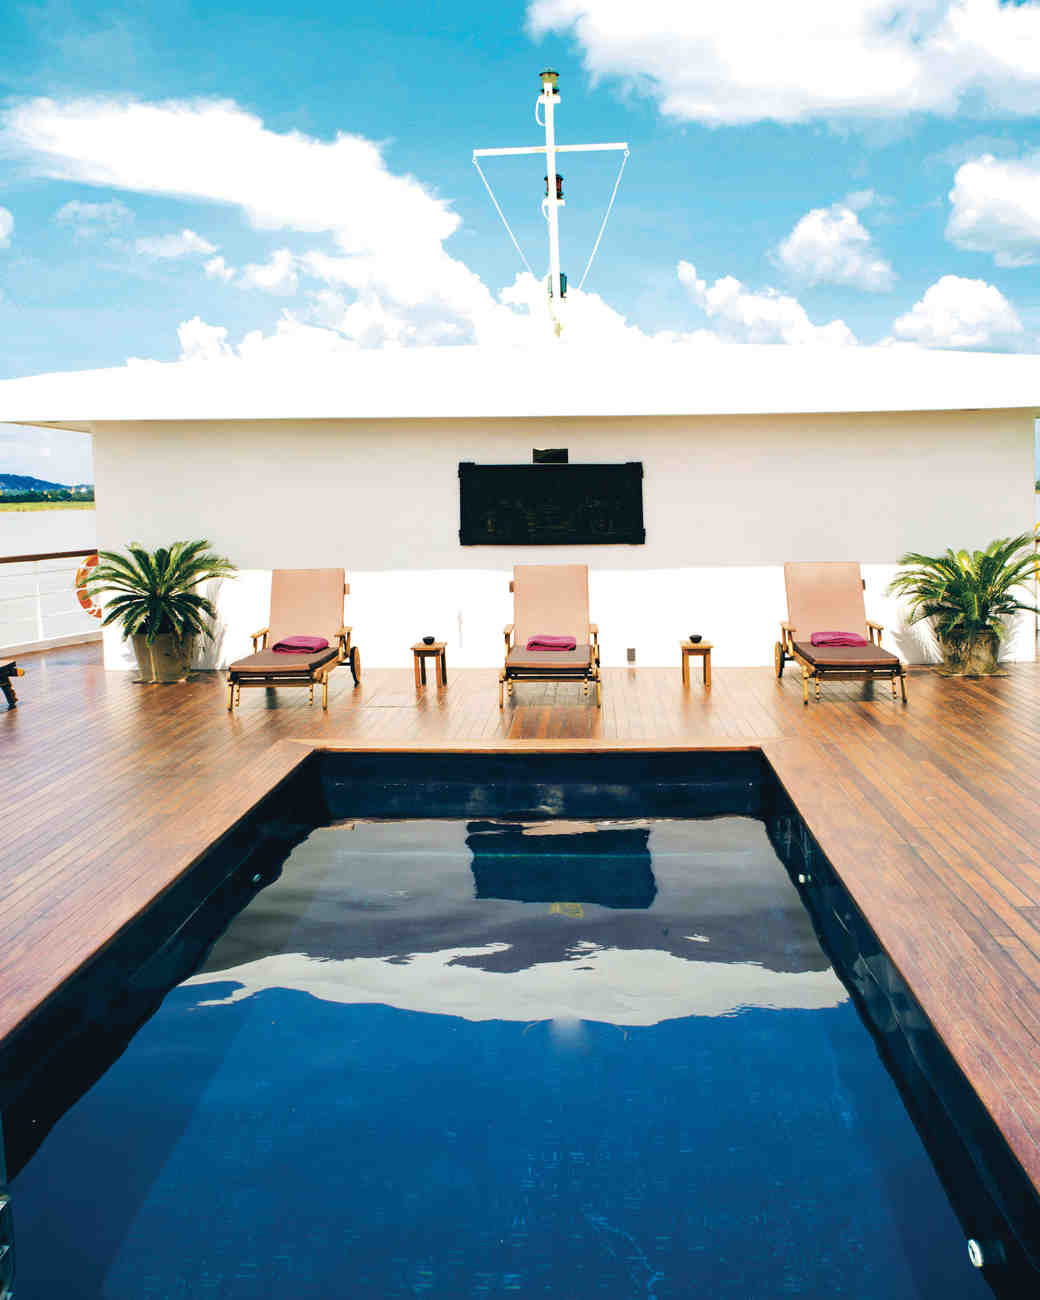 great-escapes-cruise-myanmar-pool-deck-s112759.jpg